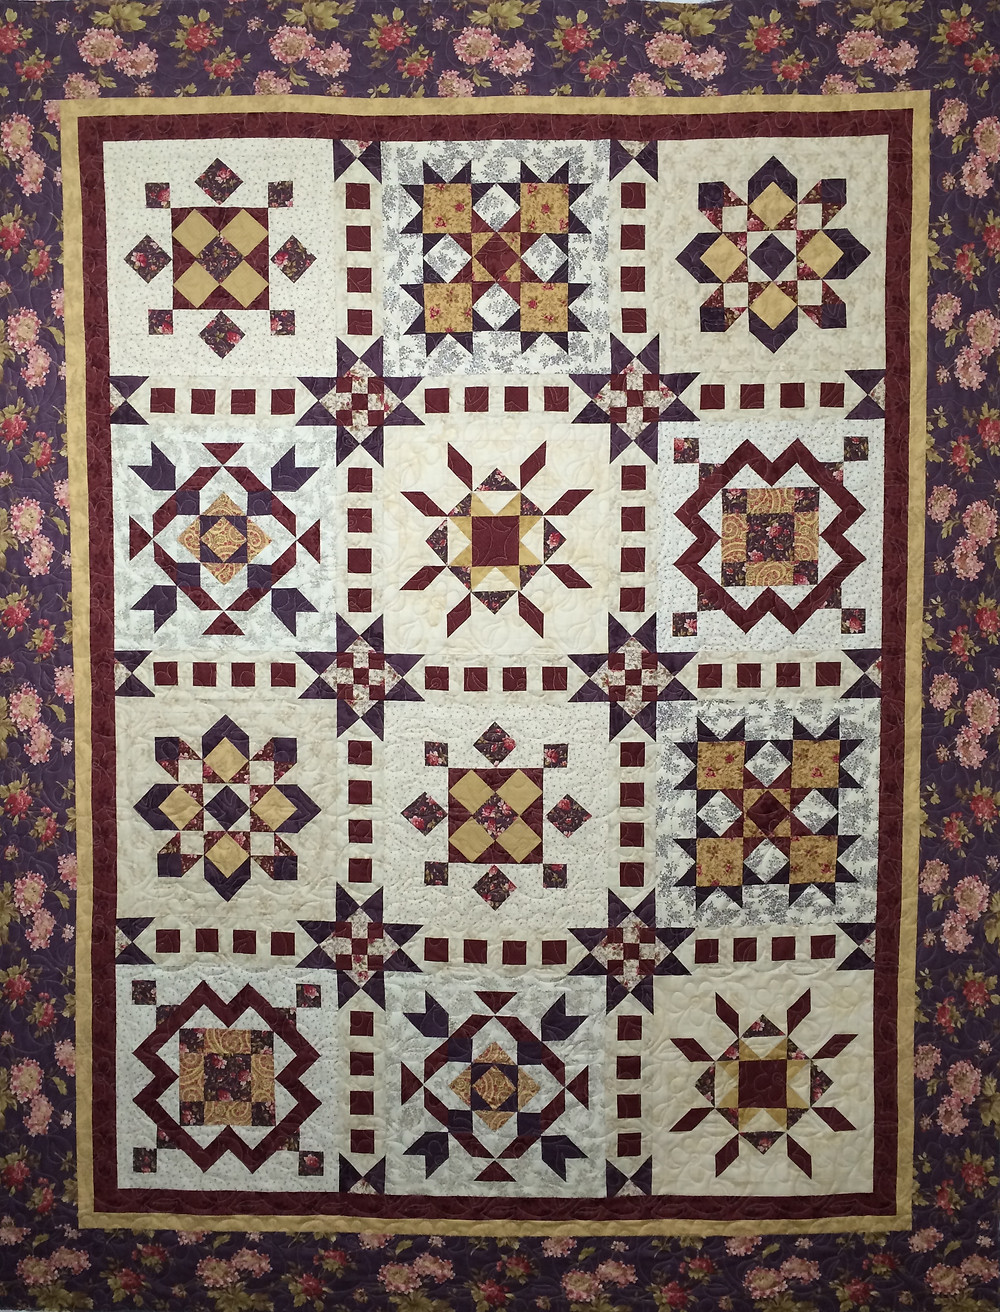 sampler quilt in shade of plum and white fabric